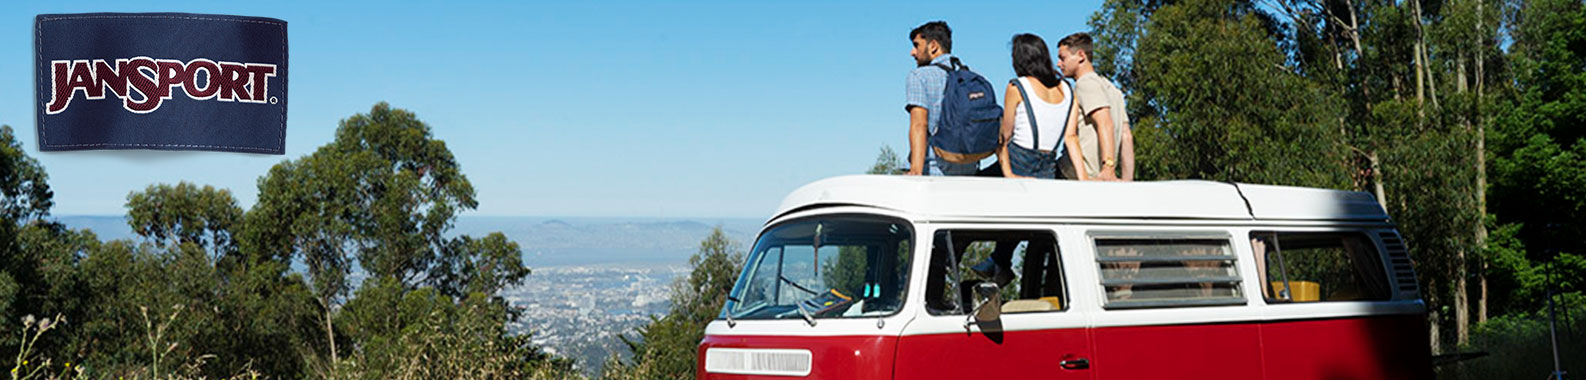 JanSport brand header image